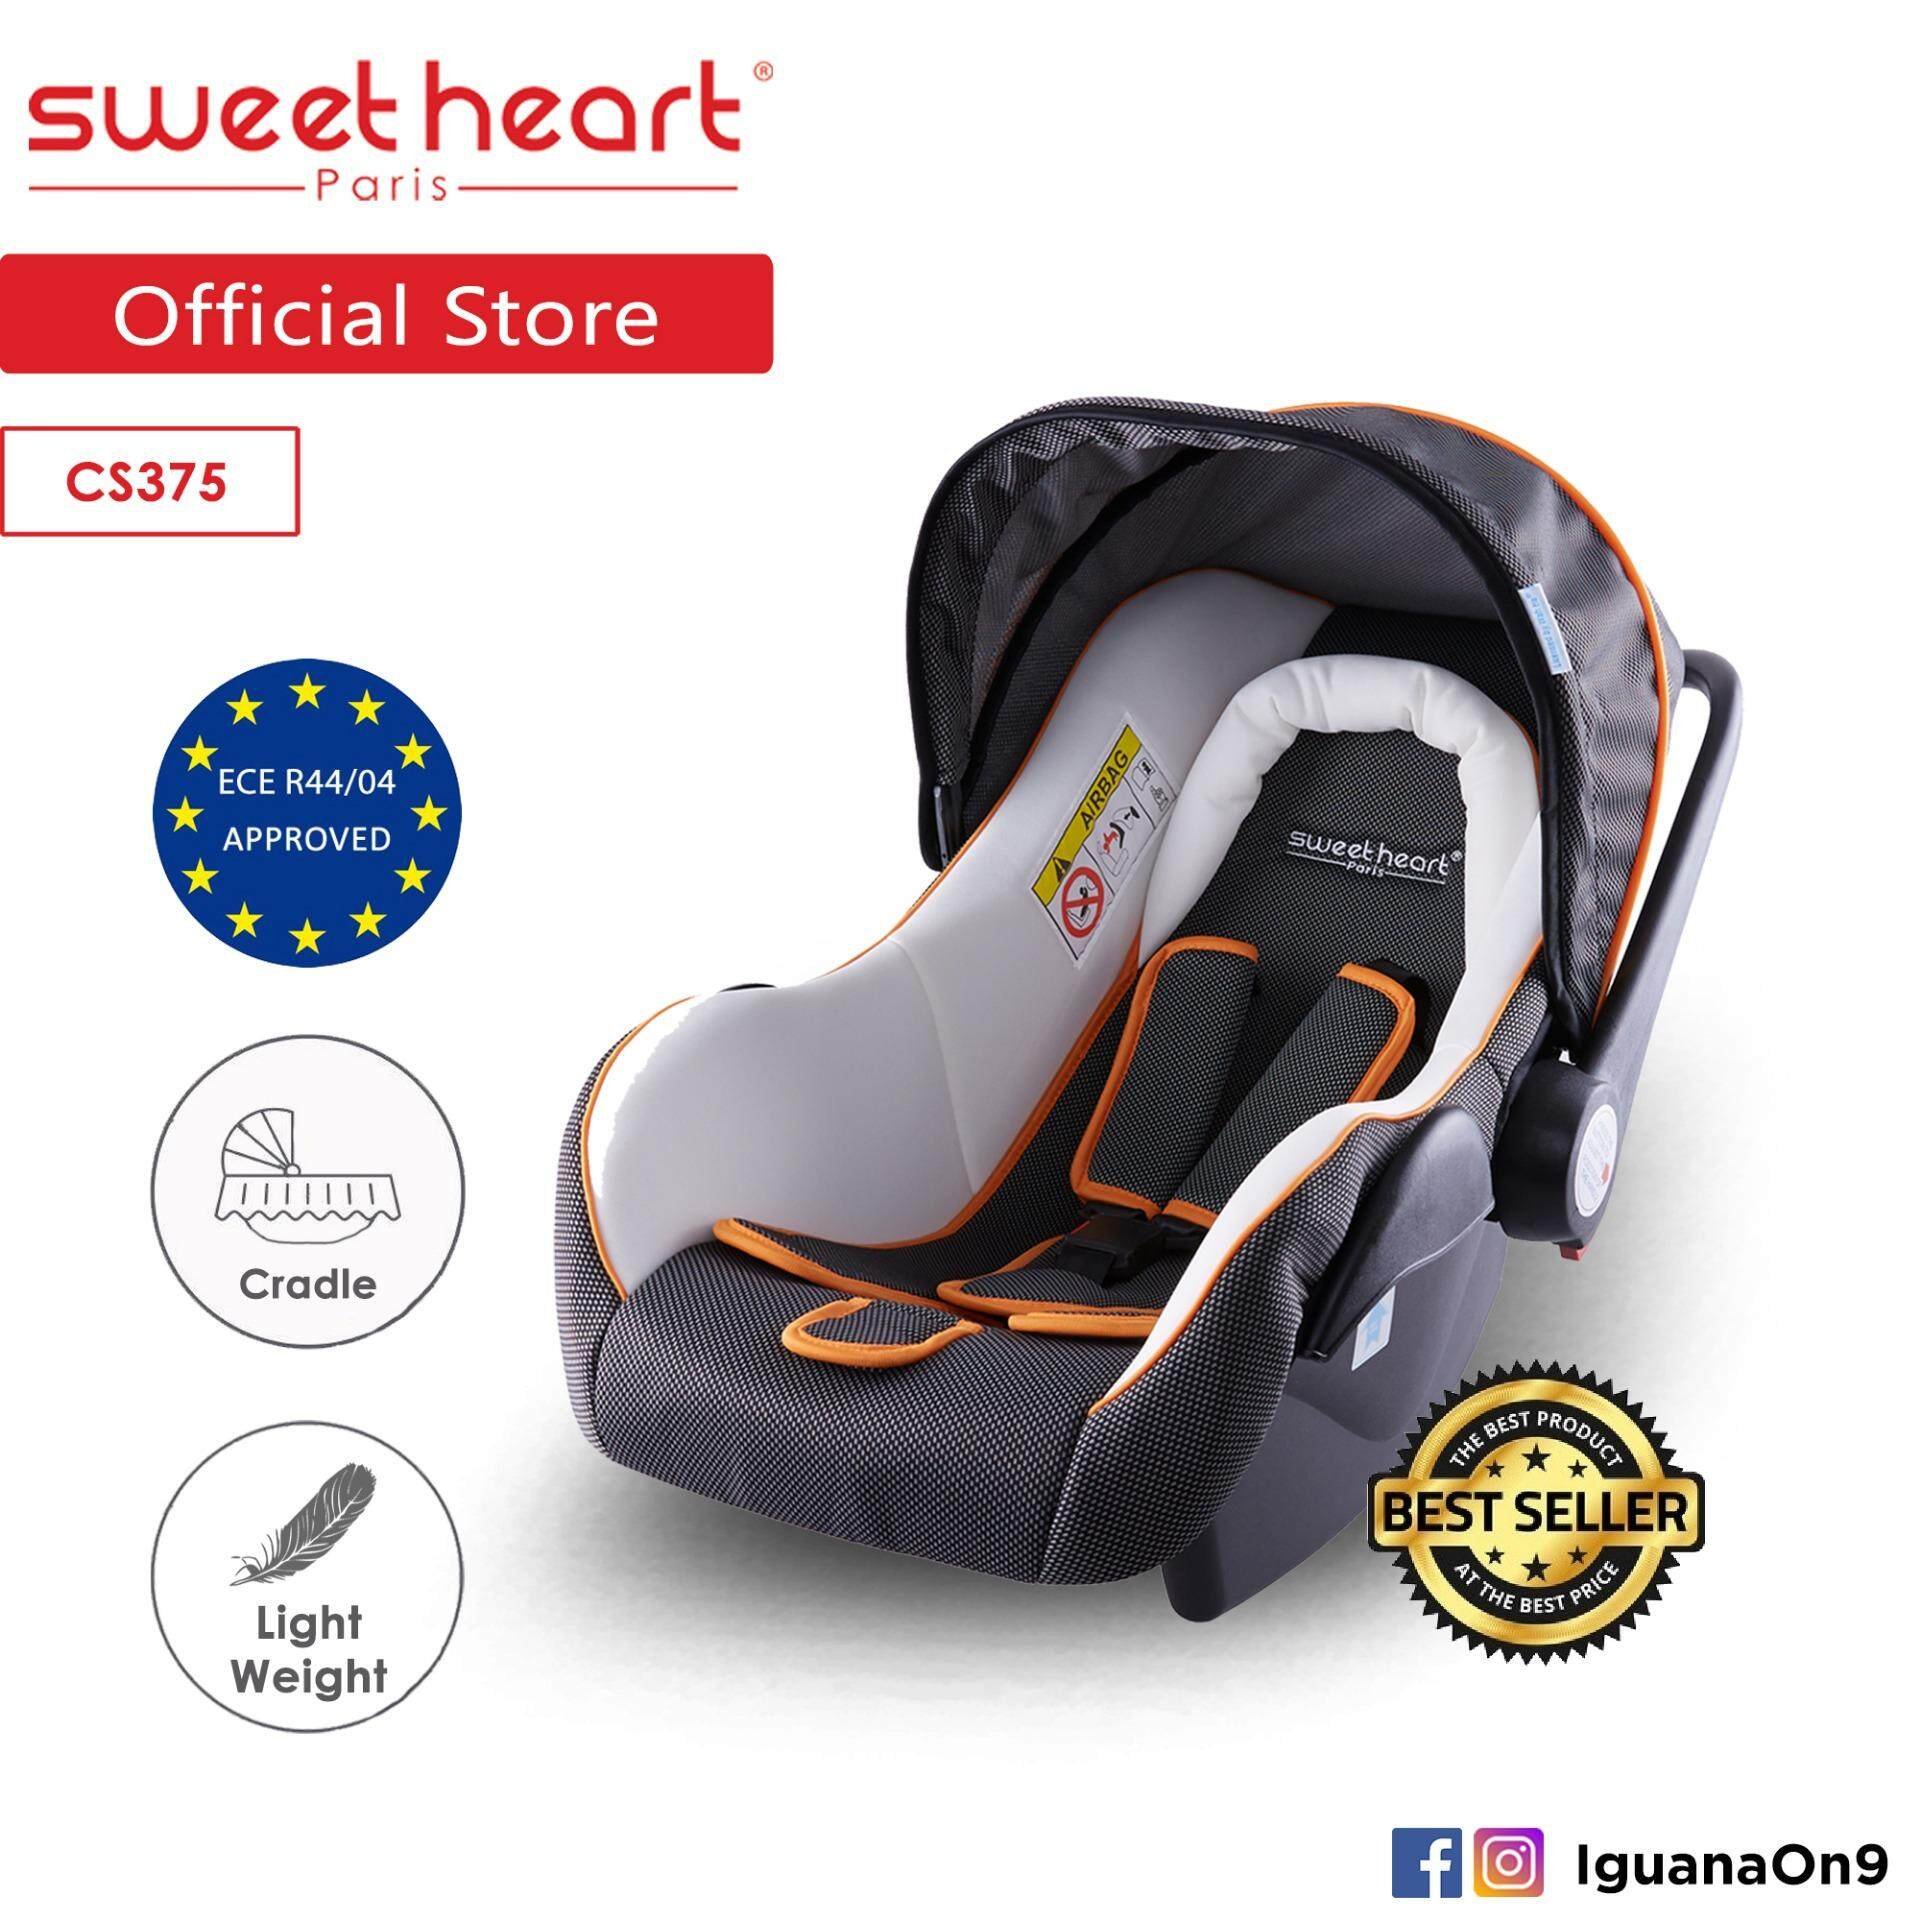 Sweet Heart Paris CS375 Baby Car Seat (White Grey) with Sun Shade Canopy